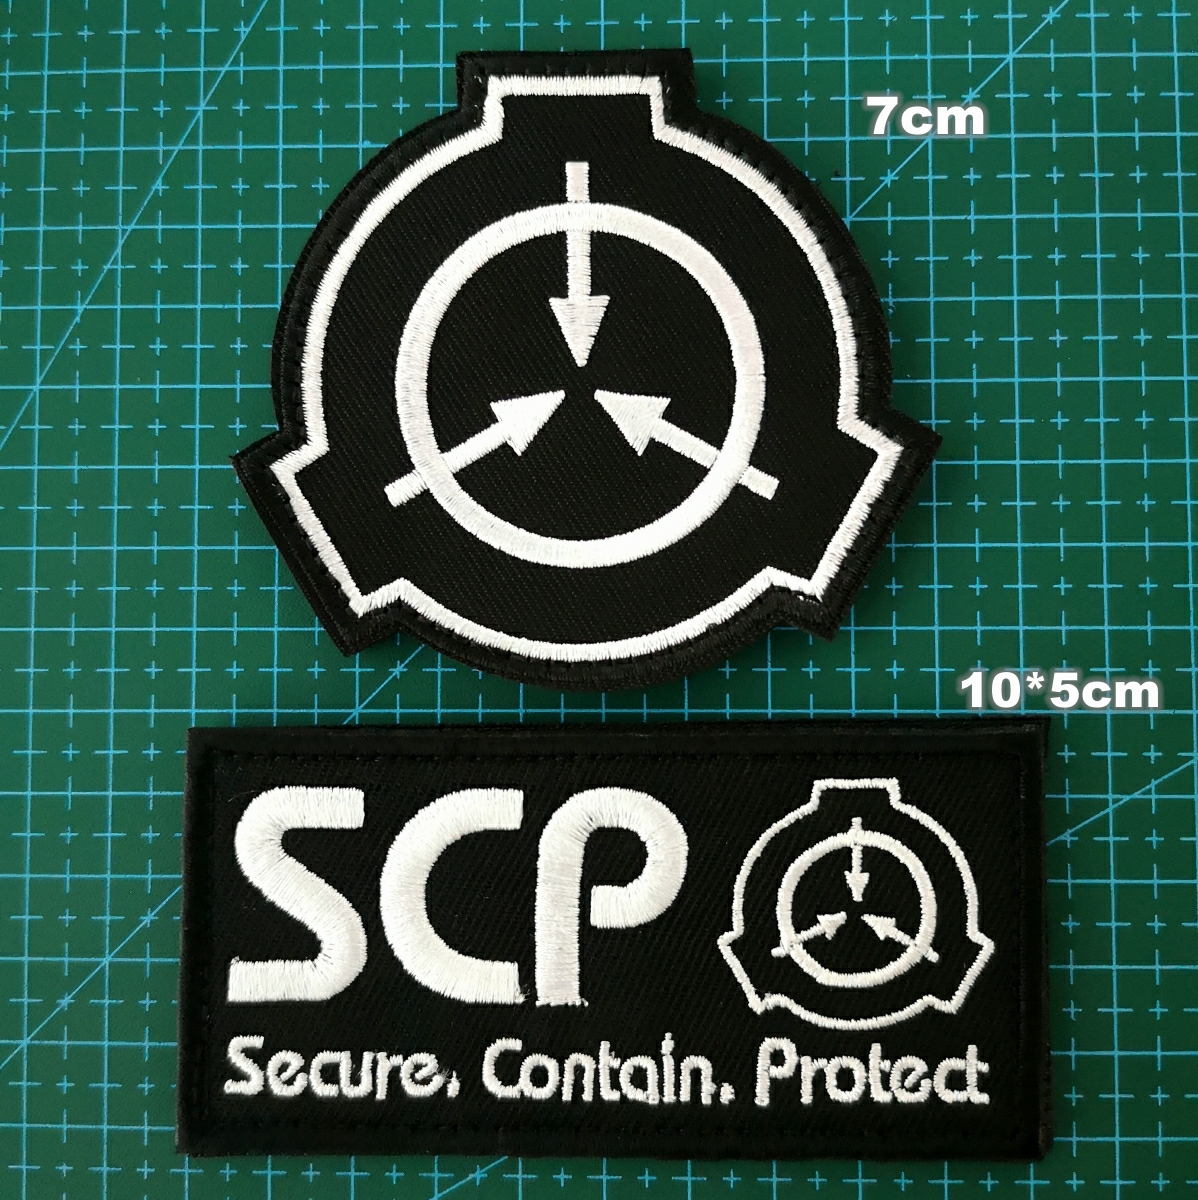 GUGUTREE embroidery HOOK&LOOP SCP <font><b>patch</b></font>,embroidered letter <font><b>patches</b></font> alphabet badges appliques for <font><b>coats</b></font> YCH-205236 image